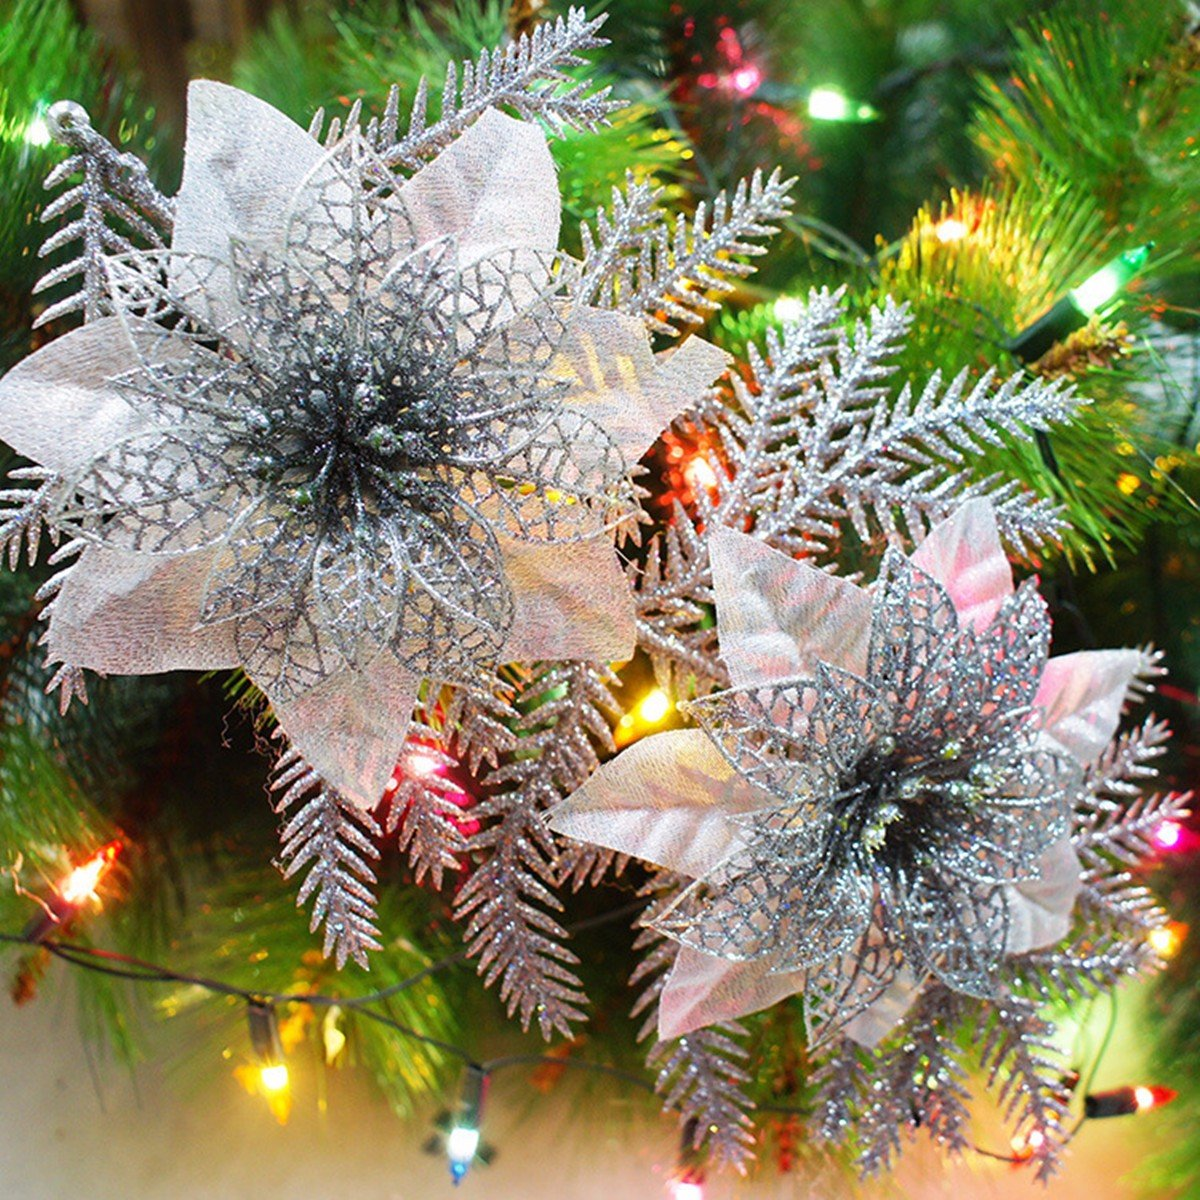 Artificial Christmas Flowers.Glitter Artificial Christmas Tree Flowers Ornament Pendant Xmas Party Decoration